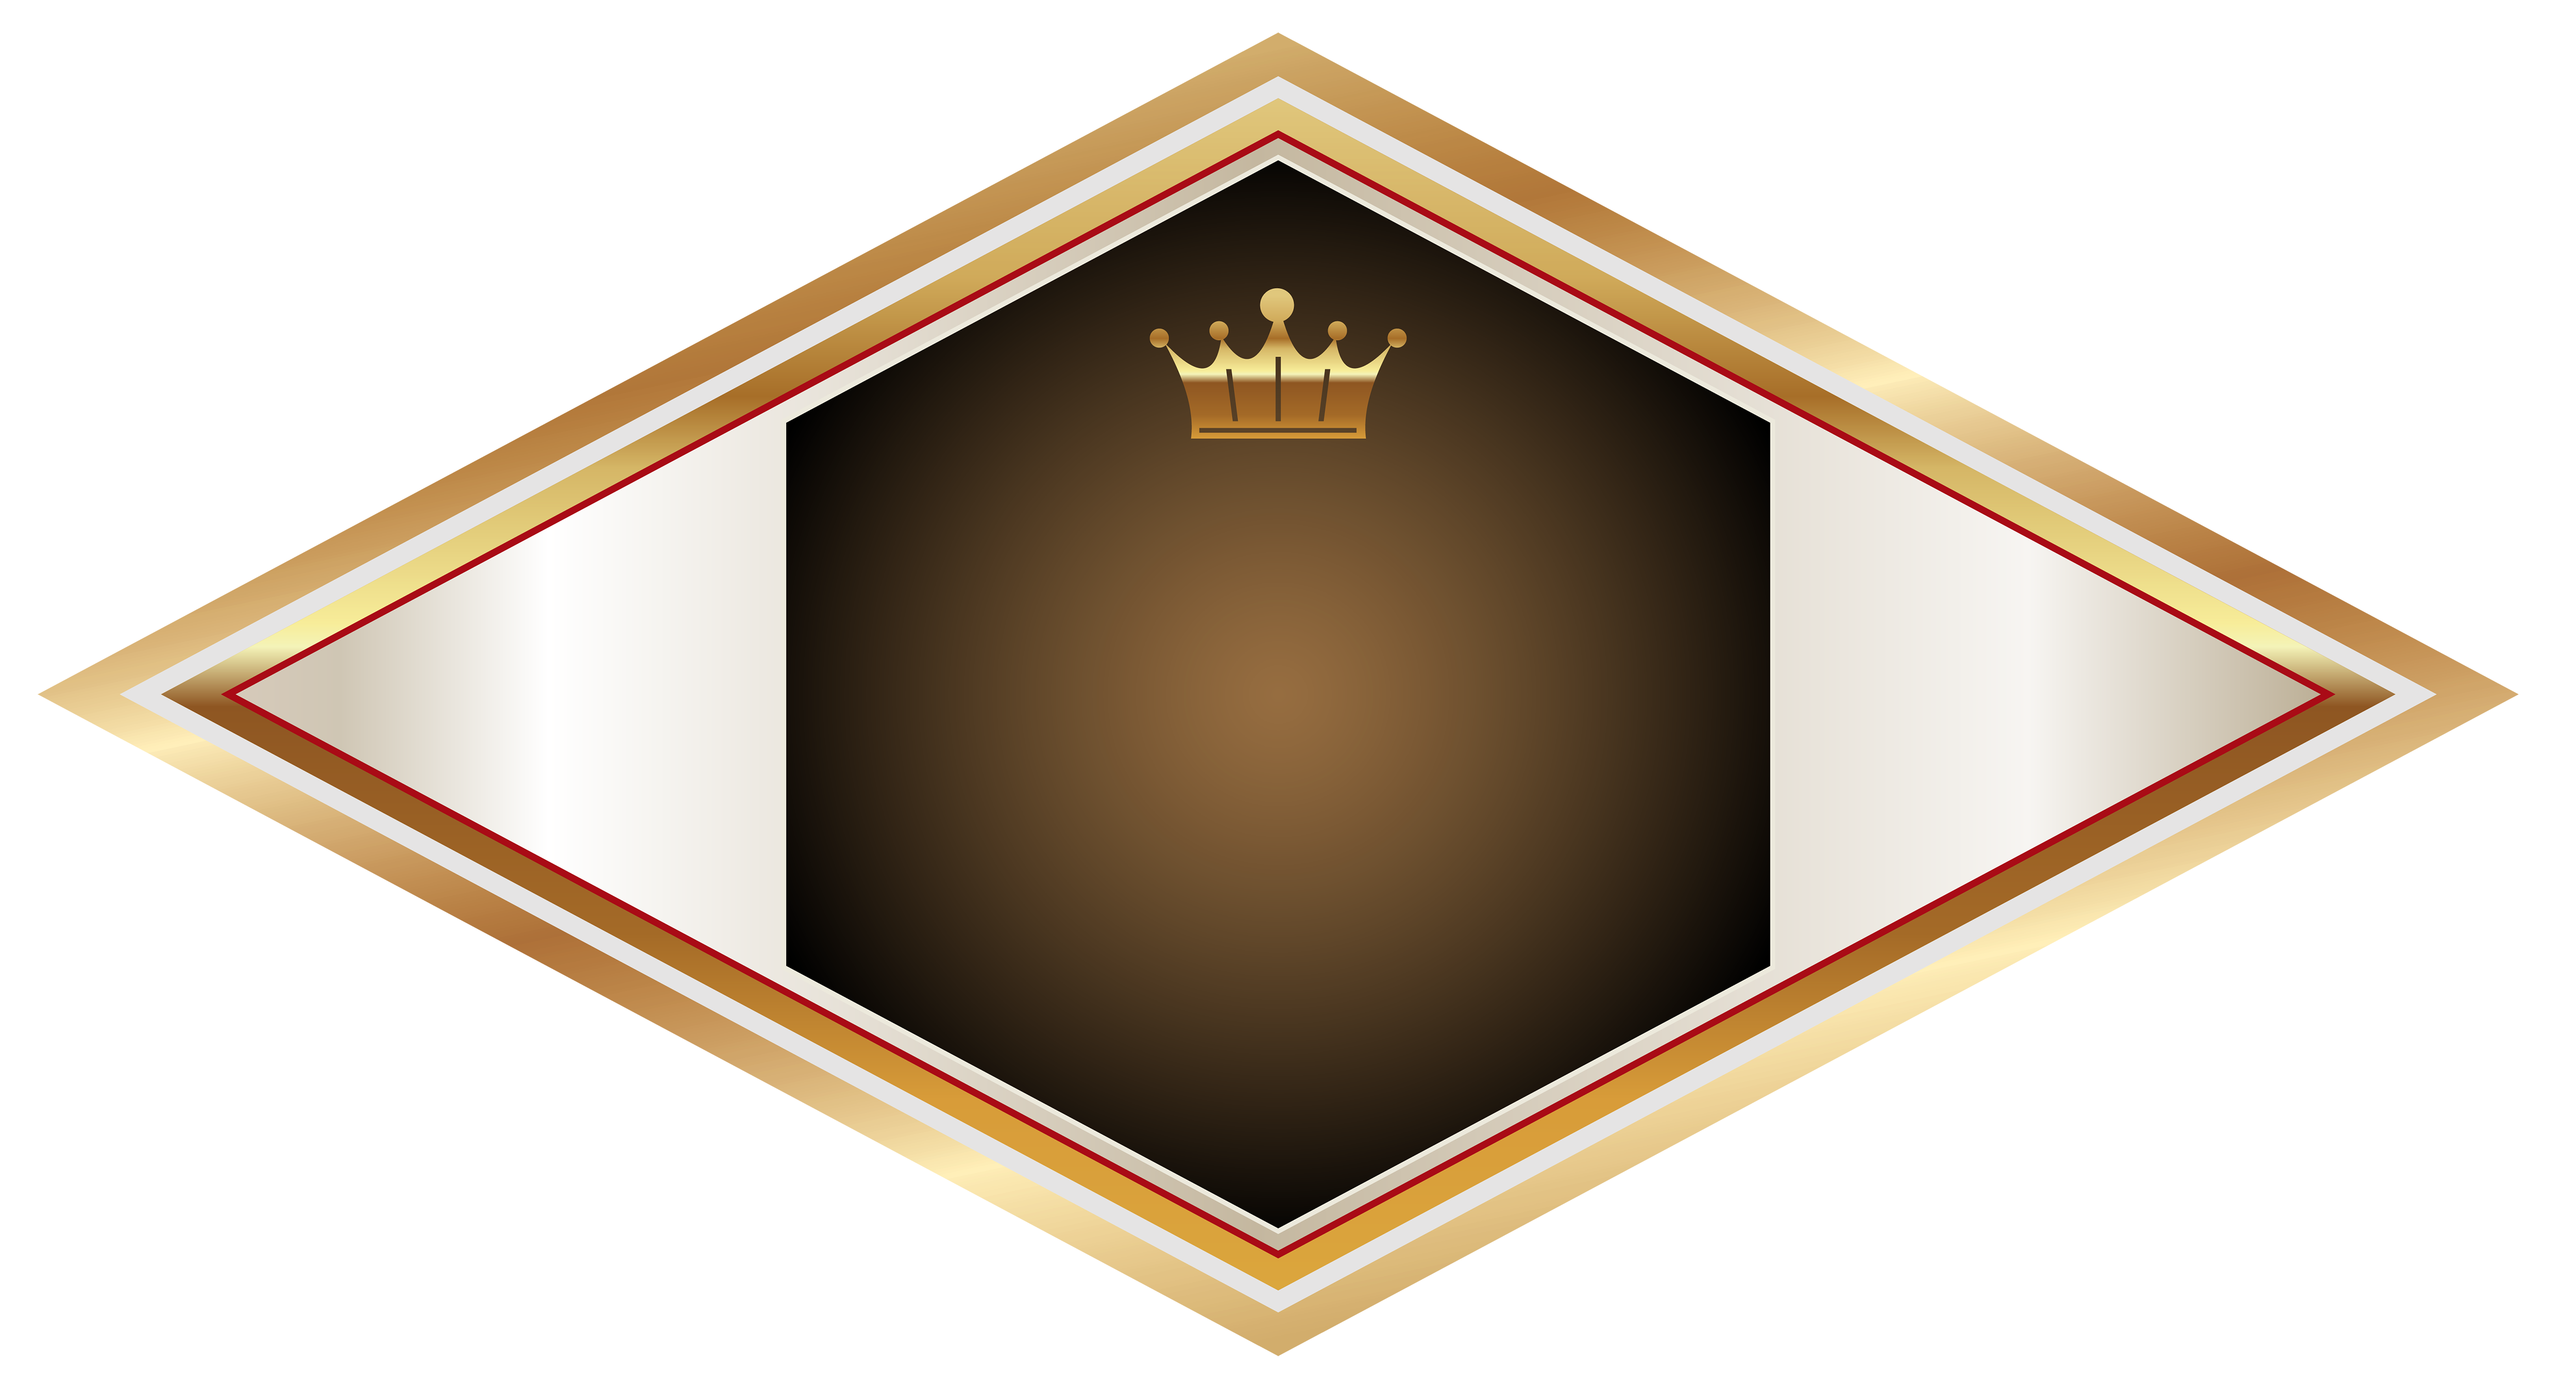 Flags clipart label. Gold and brown with